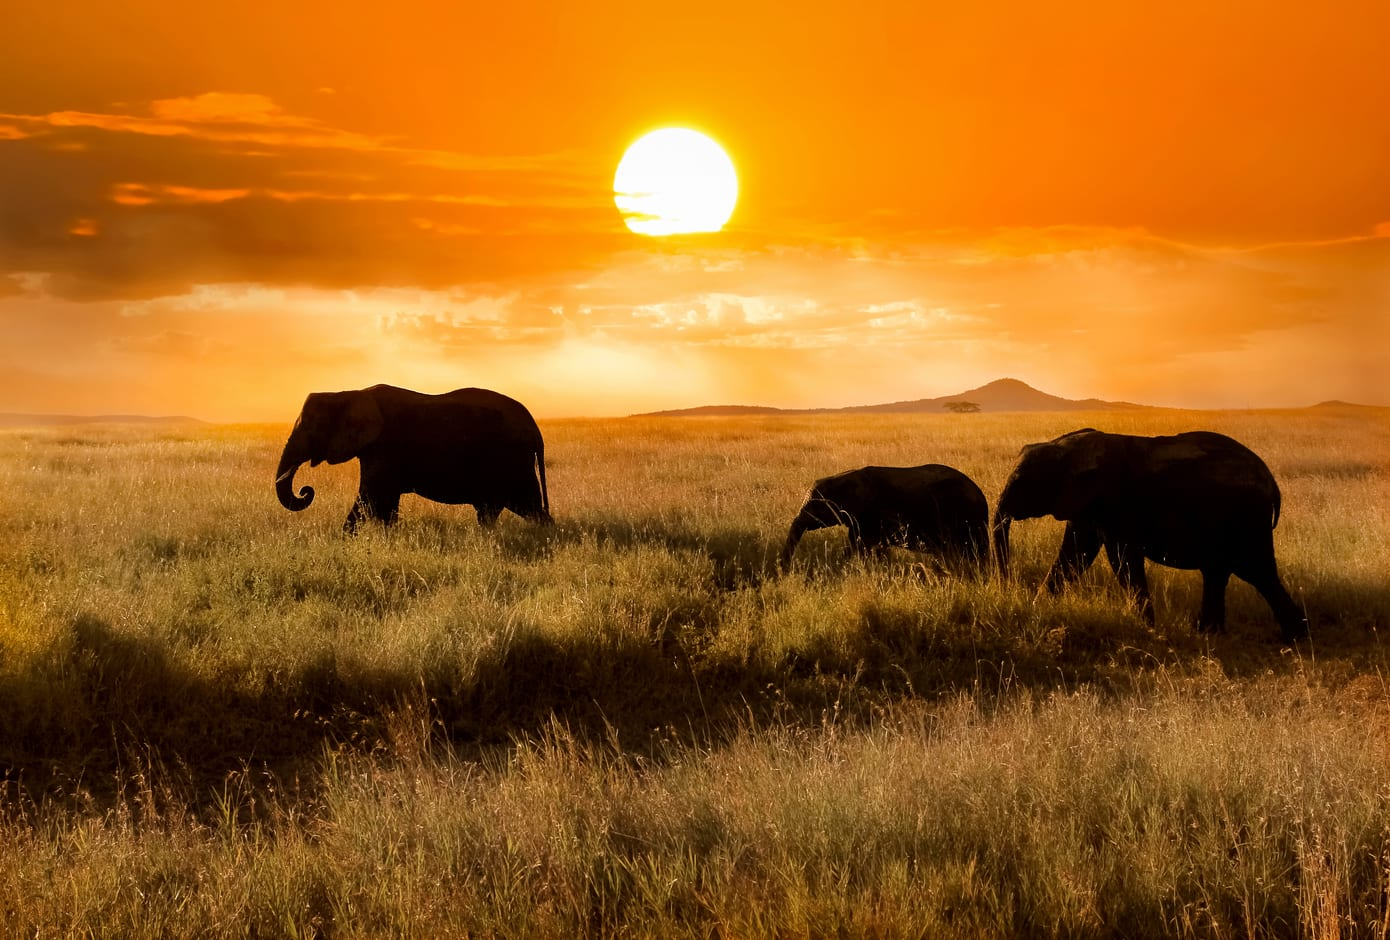 Three elephants during an orange sunset at the Serengueti National Park, in Tanzania, Africa.